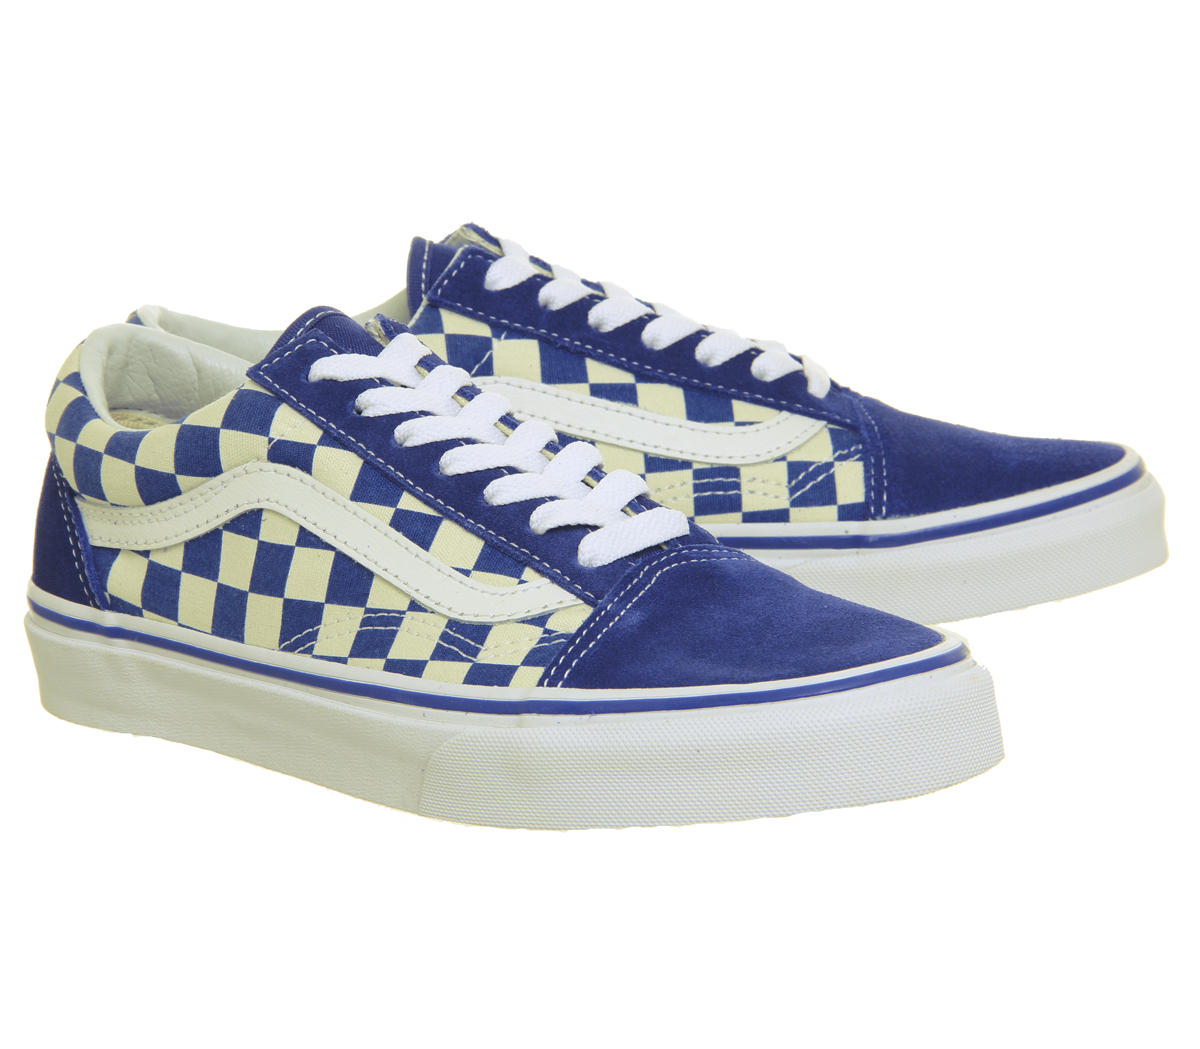 Mens Vans Old Skool Trainers TRUE Blau CLASSIC WEISS CHECKERBOARD Trainers Schuhes